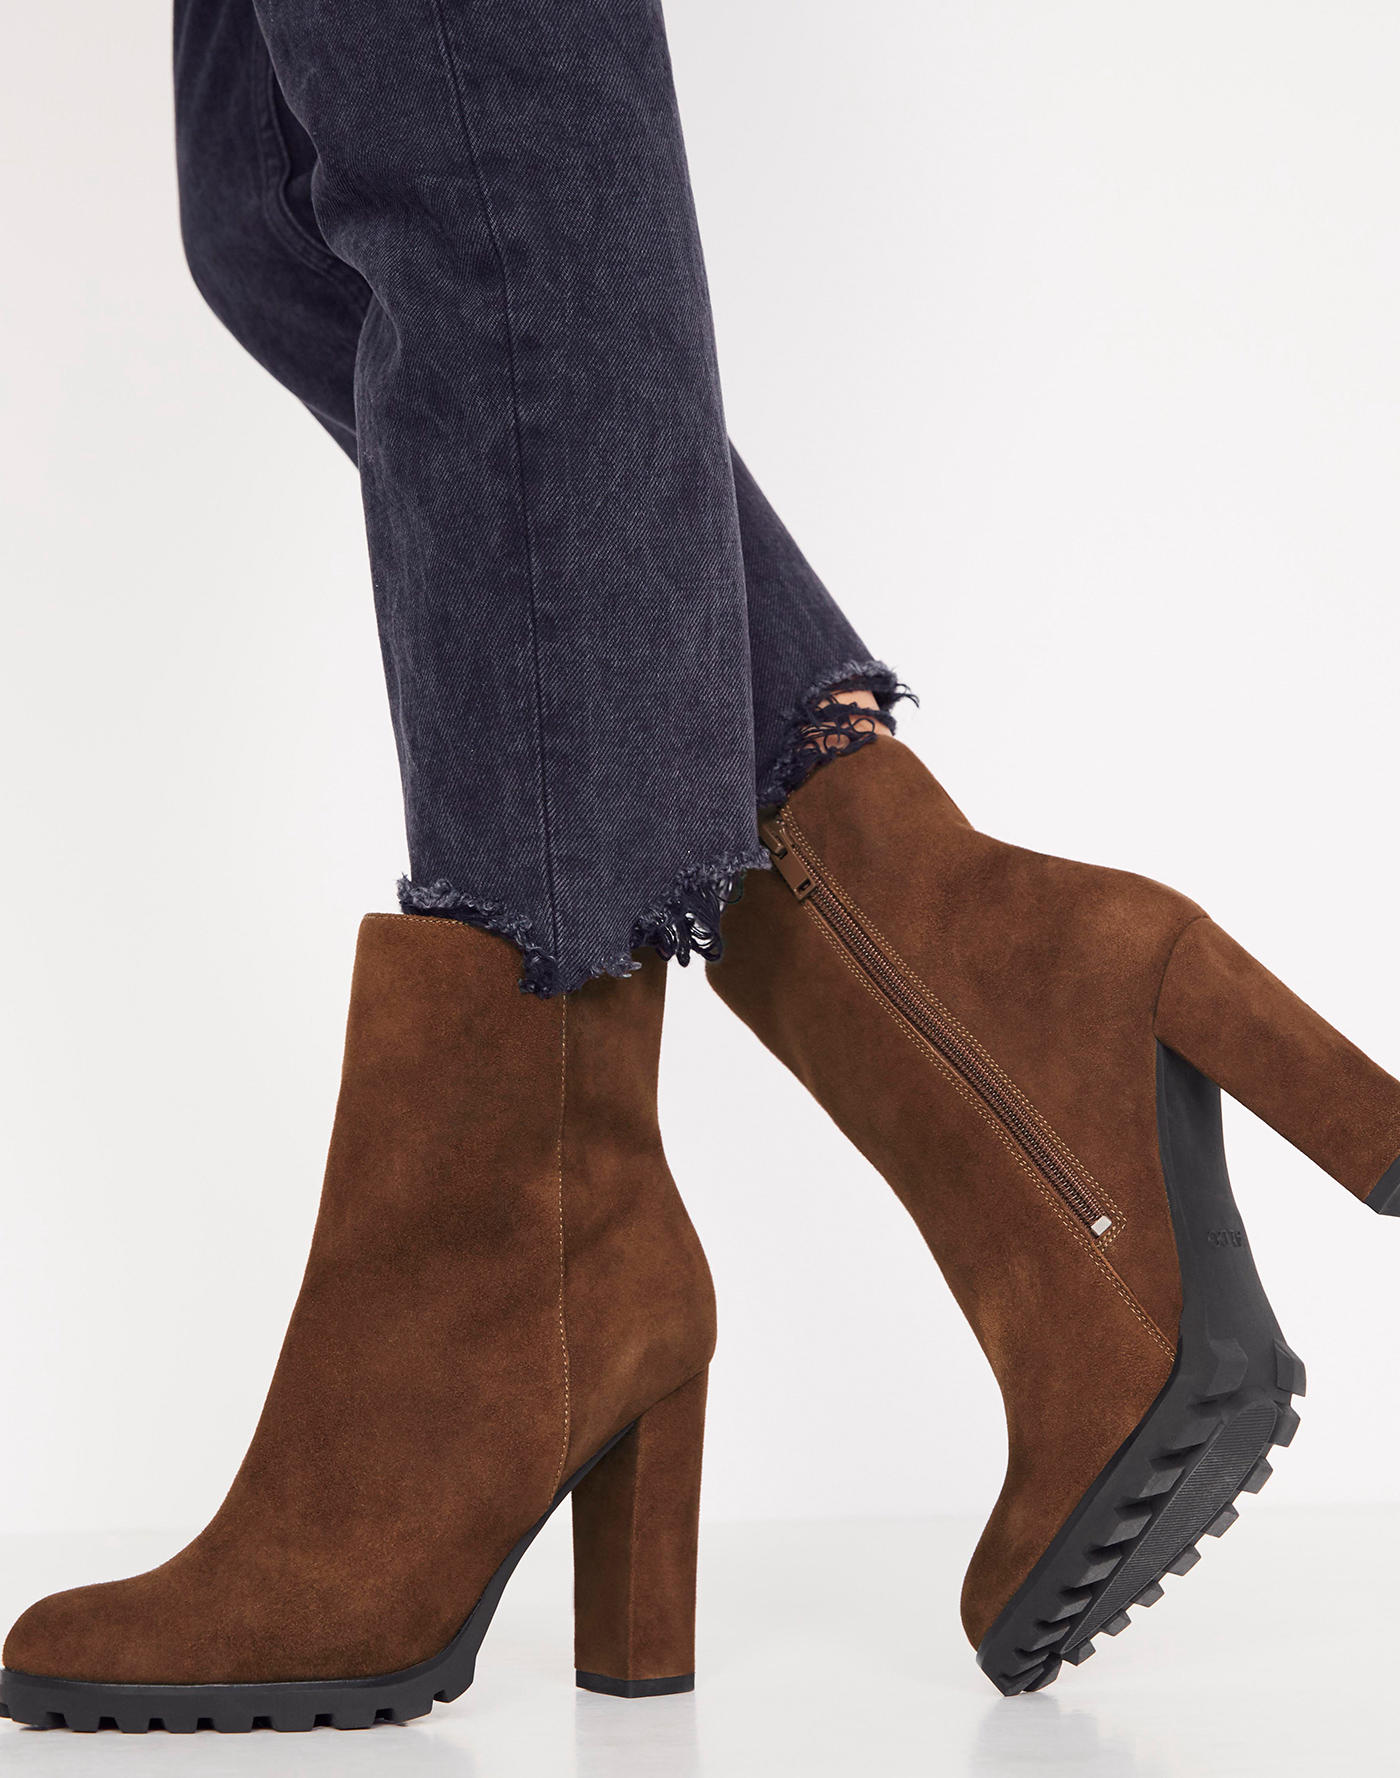 17a2d054e1c73 Boots For Women | Winter Boots & Ankle Boots | ALDO US | Aldoshoes.com US